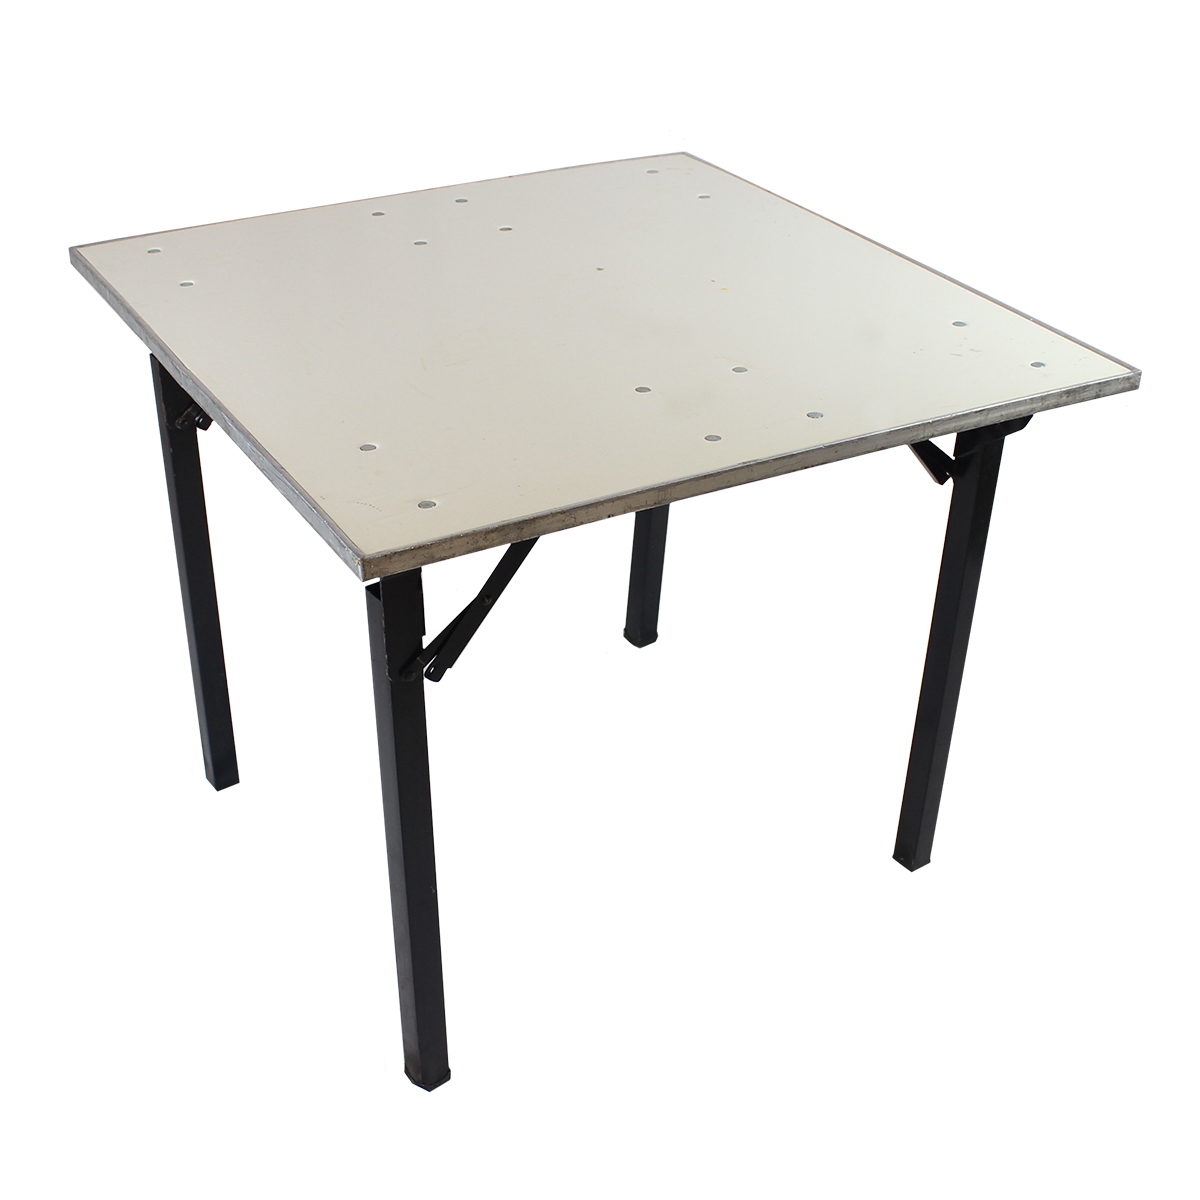 "Table 36""x36"" White Formica Topped"